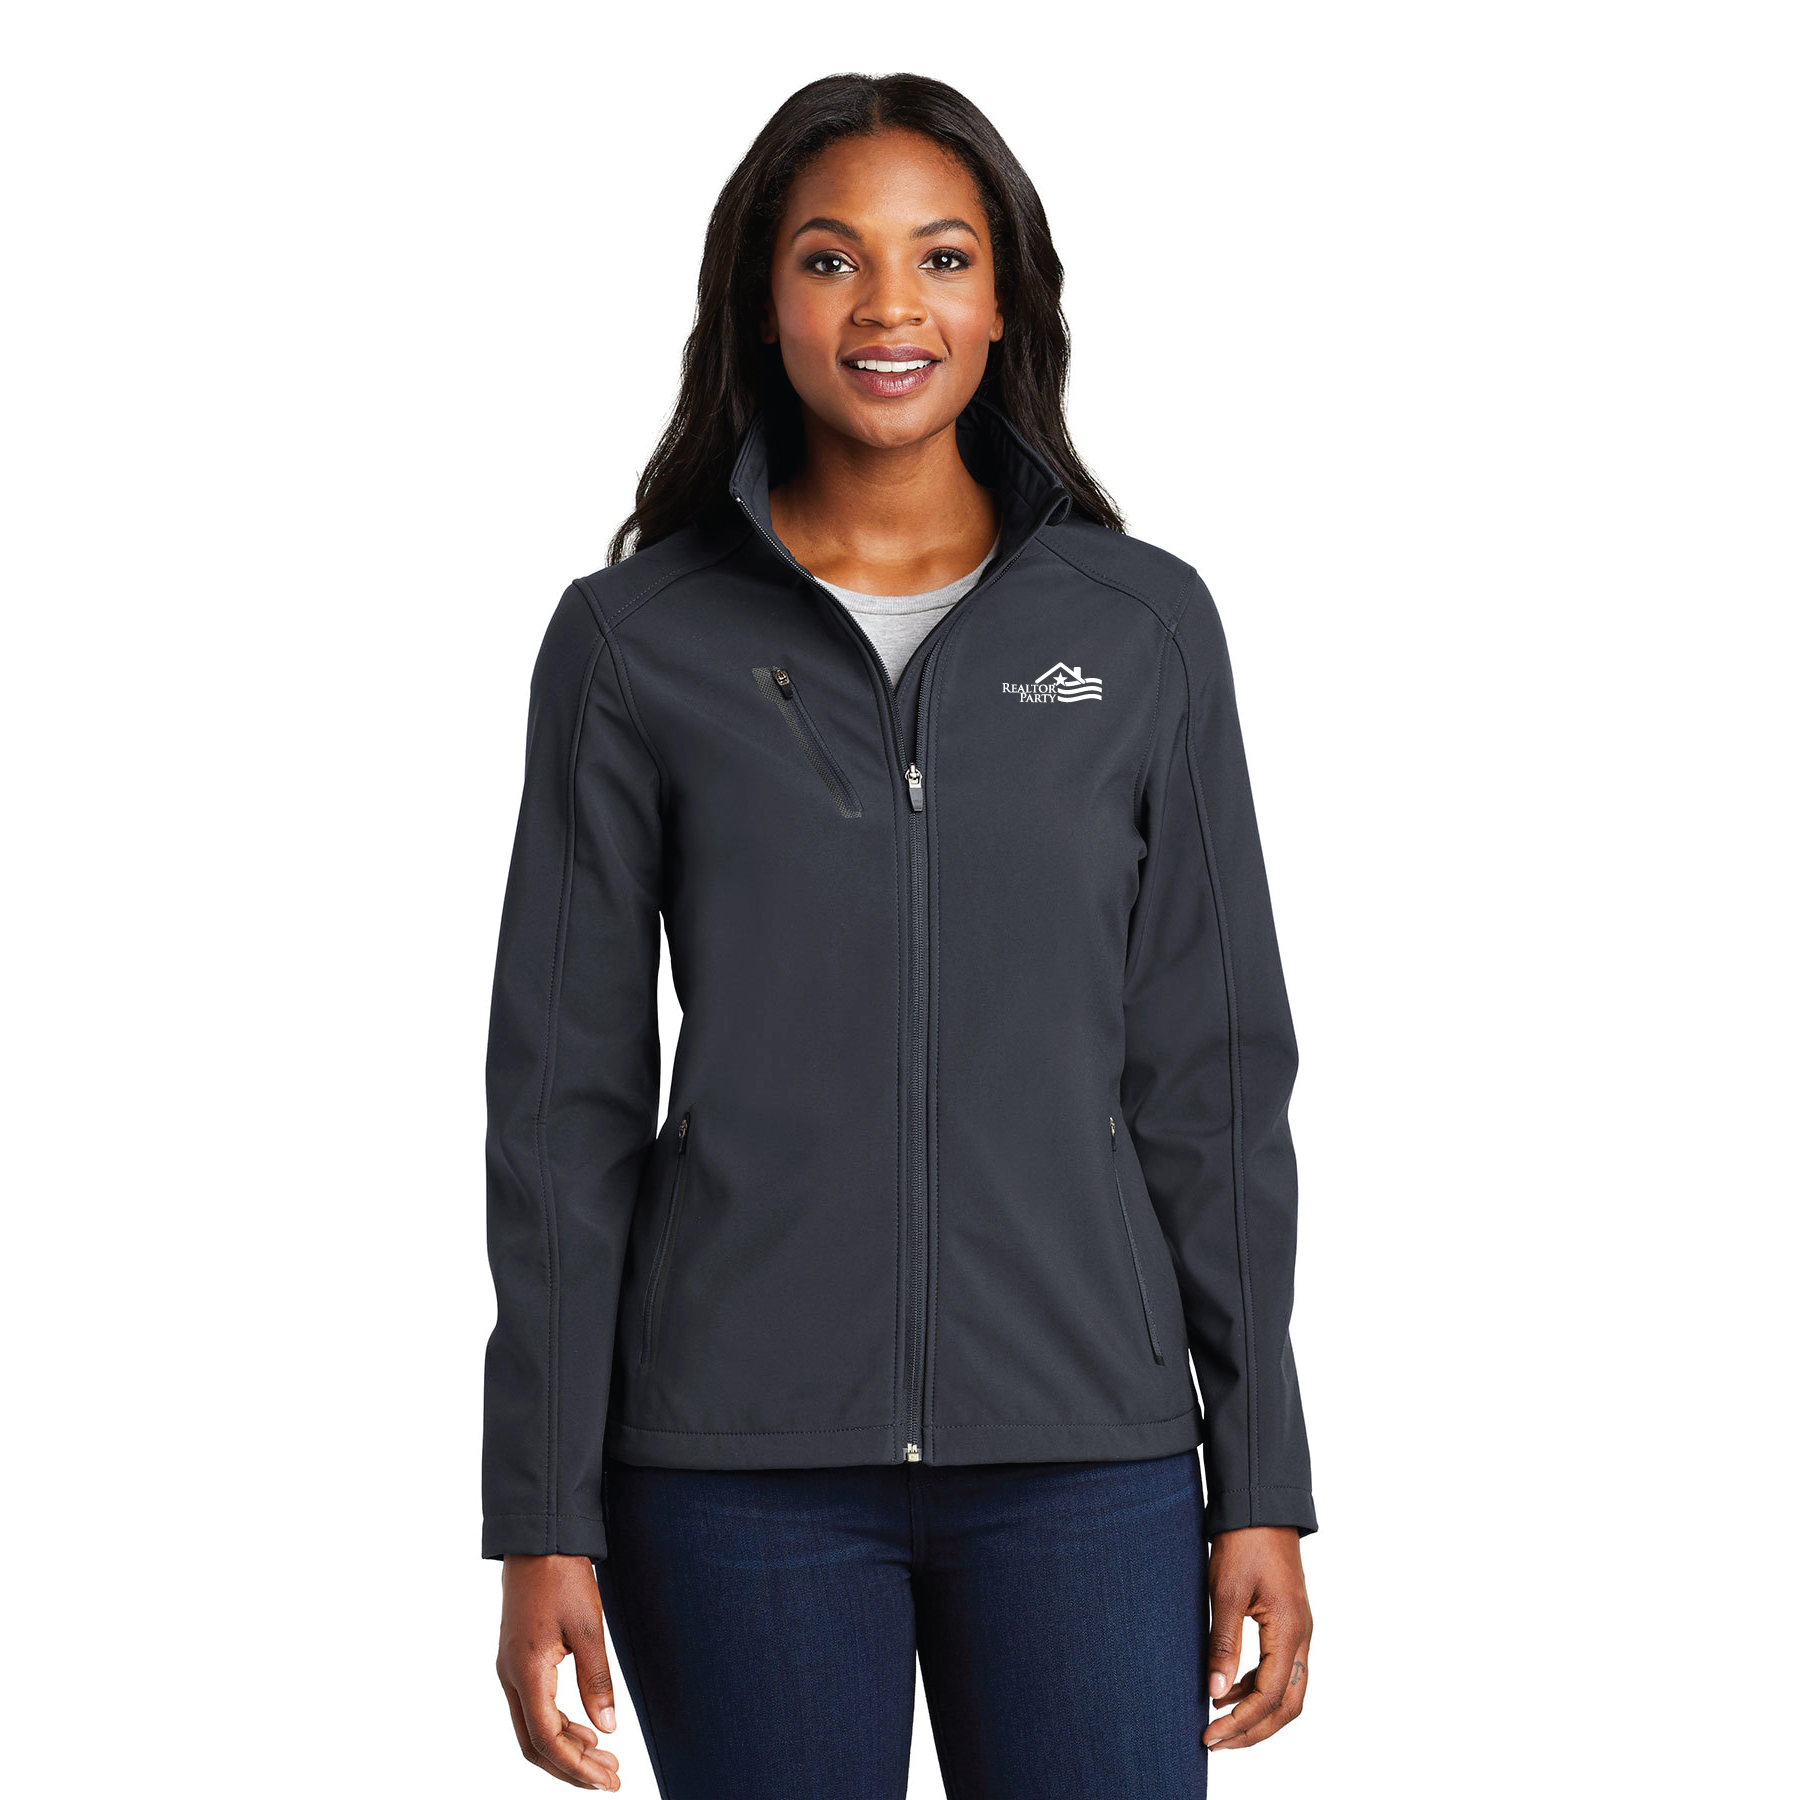 REALTOR® Party Ladies Welded Soft Shell Jacket ladies, welded, softs, shells, jackets,Parties